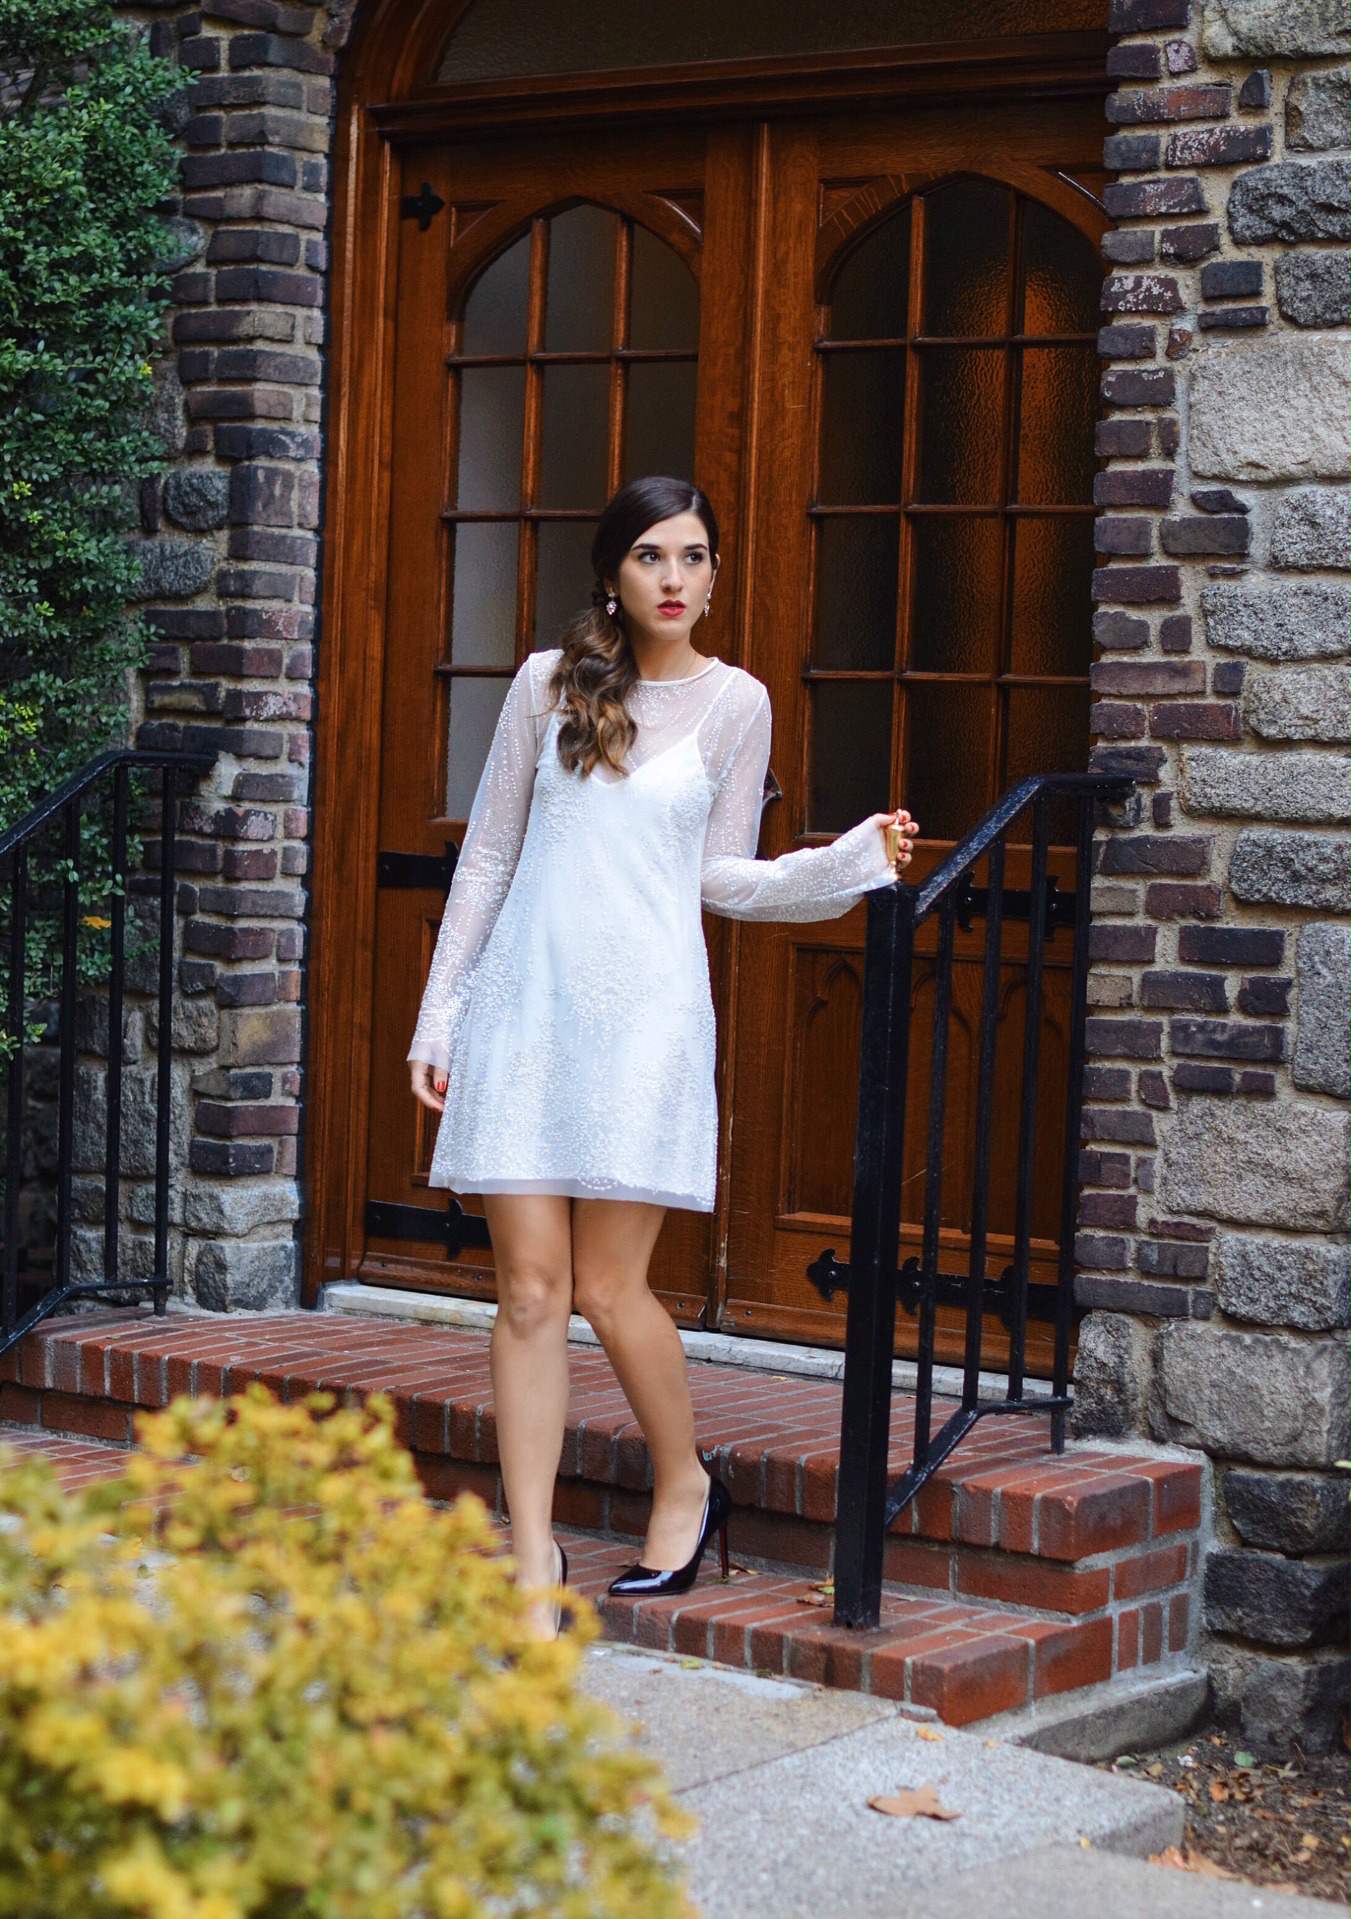 Holiday Look White Glitter Dress Elahn Jewels Louboutins & Love Fashion Blog Esther Santer NYC Street Style Blogger Diamond Rings Earrings Emerald Beautiful Fine Jewelry Girl Women Shopping Model Happiness Boutique  OOTD Outfit Inspo Shoes Black Heels.jpg